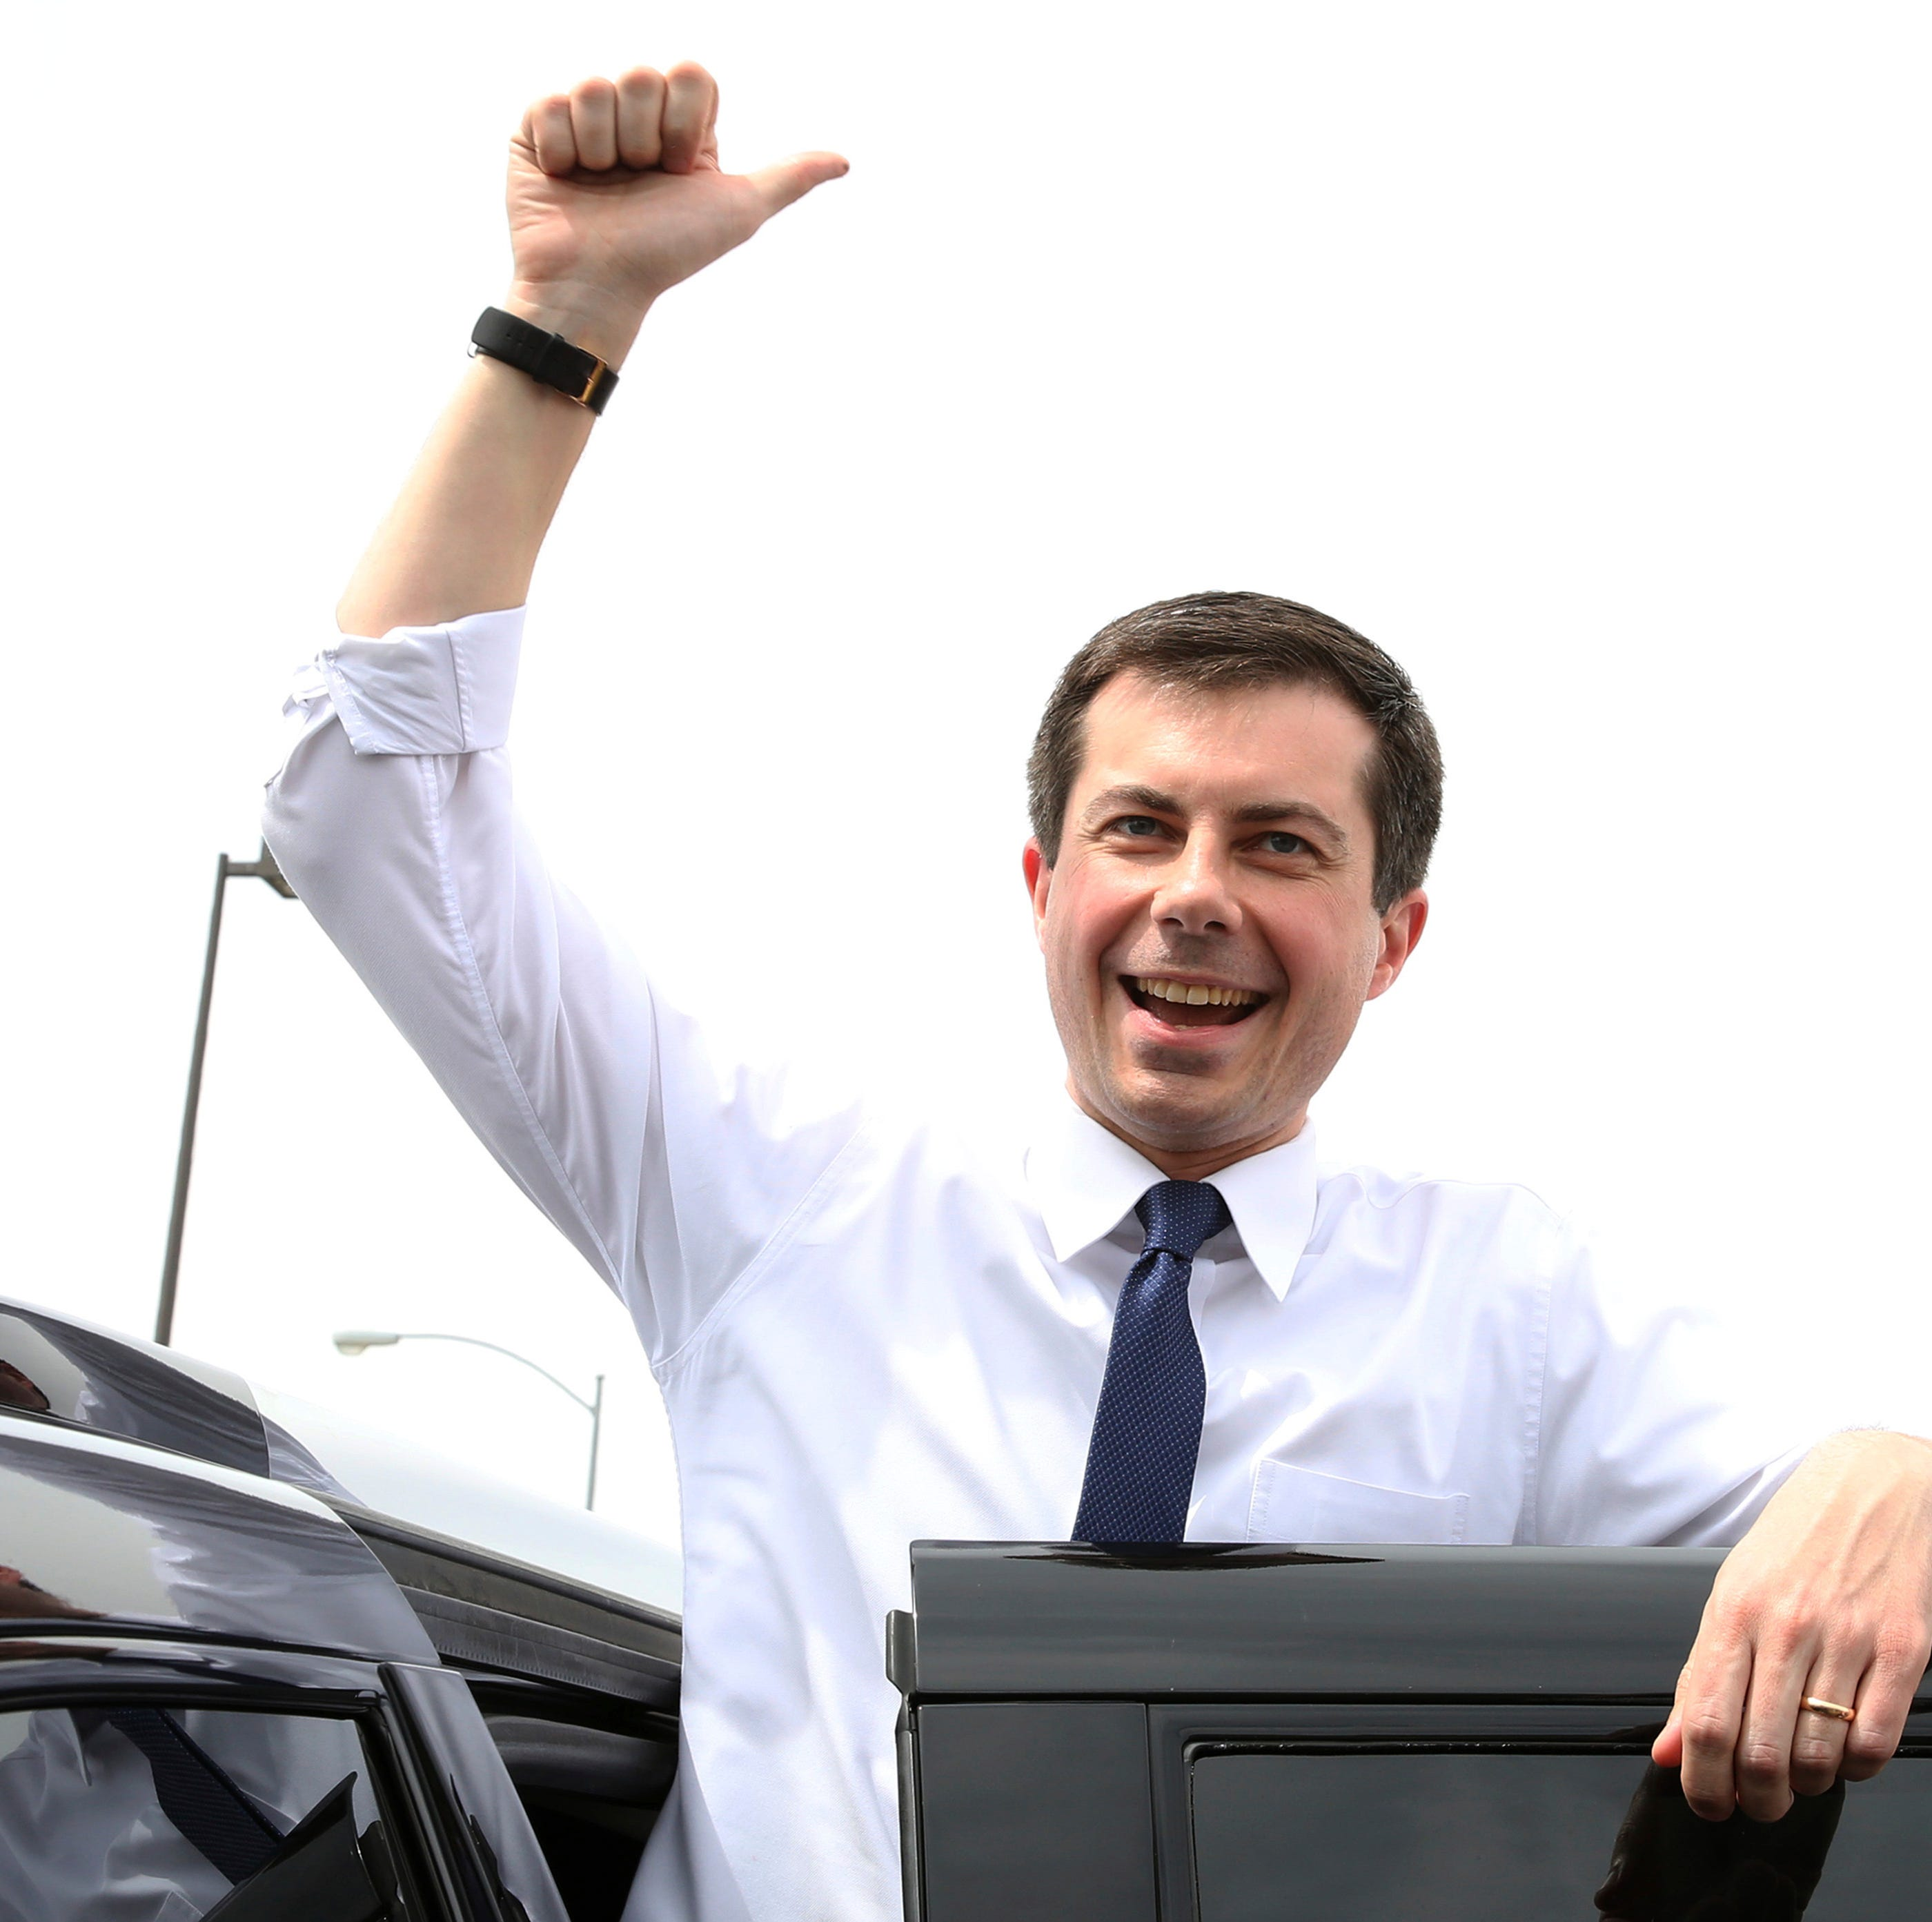 South Bend, Ind. Mayor Pete Buttigieg flashes a thumbs-up as he prepares to depart after speaking at a meet and greet event at MadHouse Coffee on Monday, April 8, 2019, in Las Vegas.